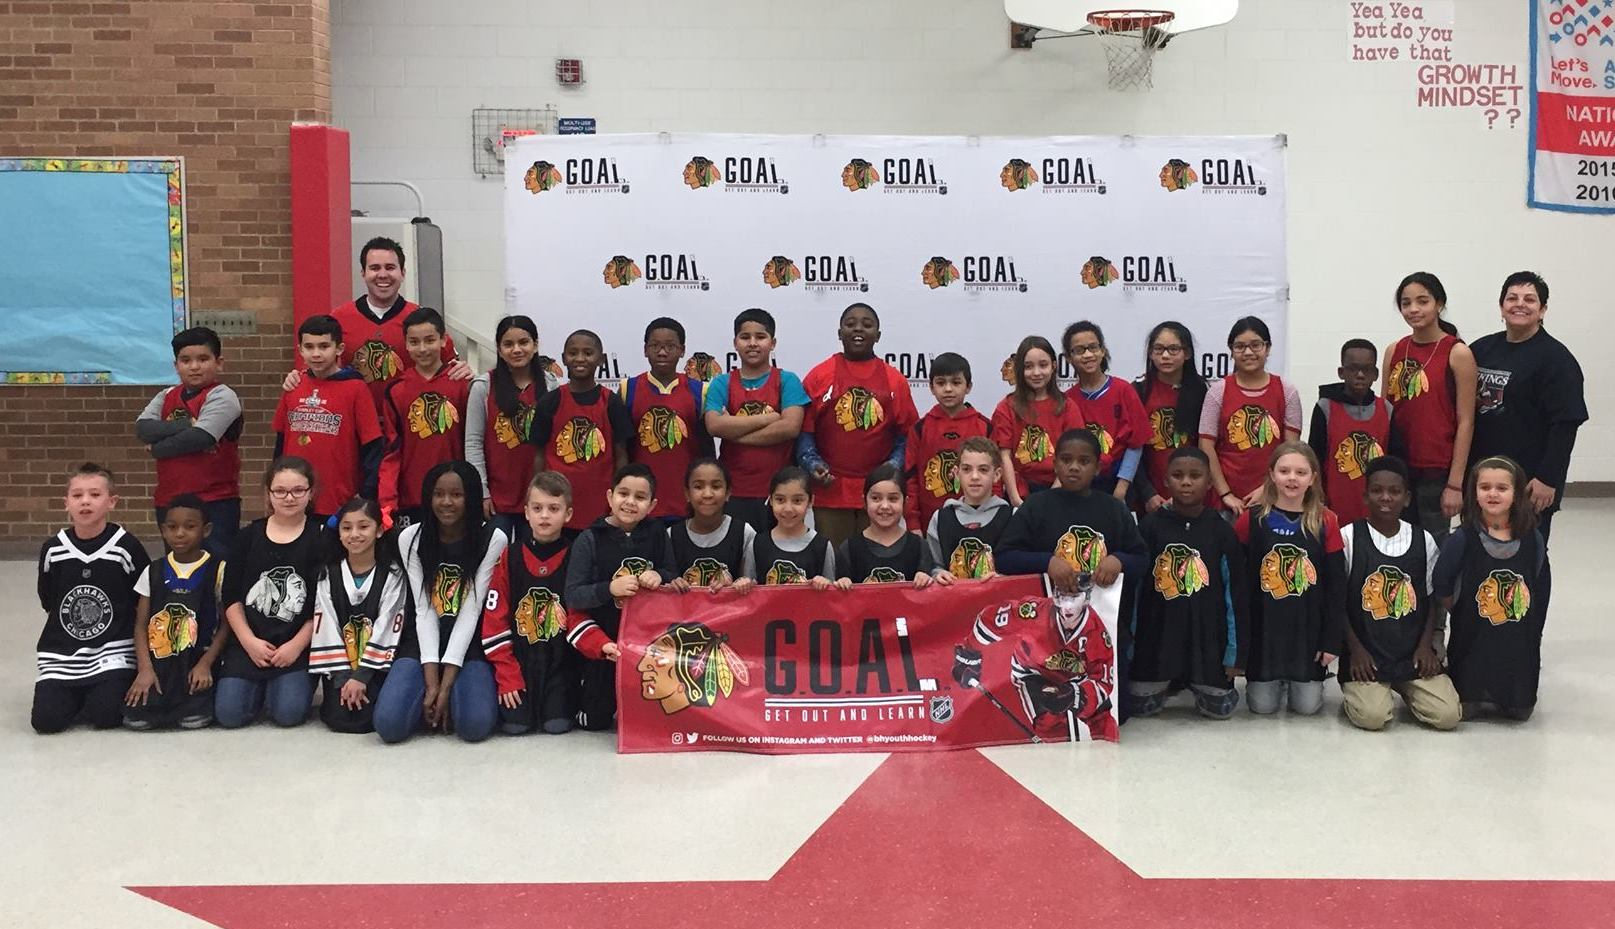 Serena Hills earned an on-site hockey clinic with the Chicago Blackhawks through GOAL.